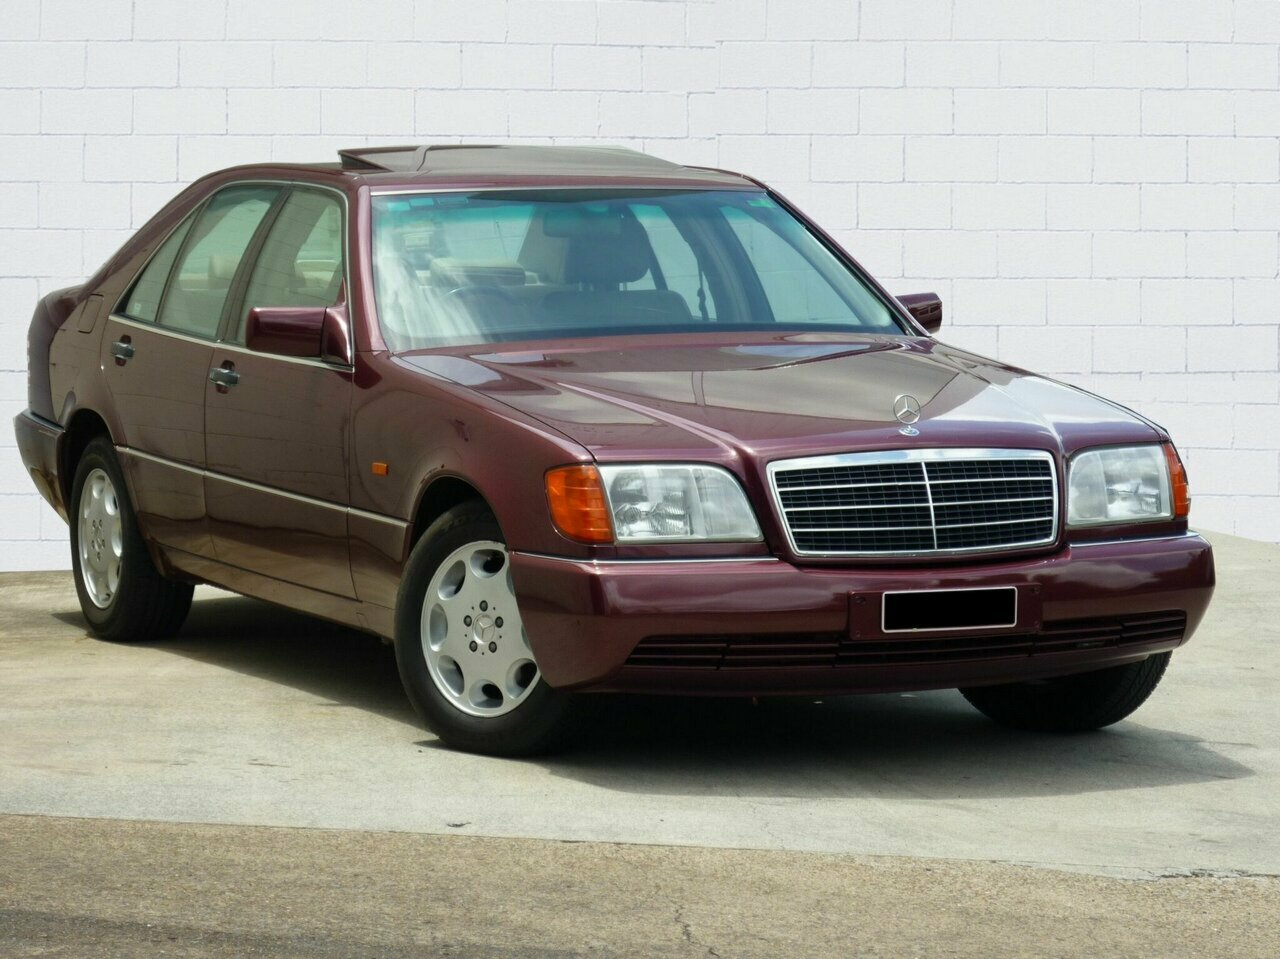 Mercedes-benz 300 Cars for sale in Australia - JUST CARS